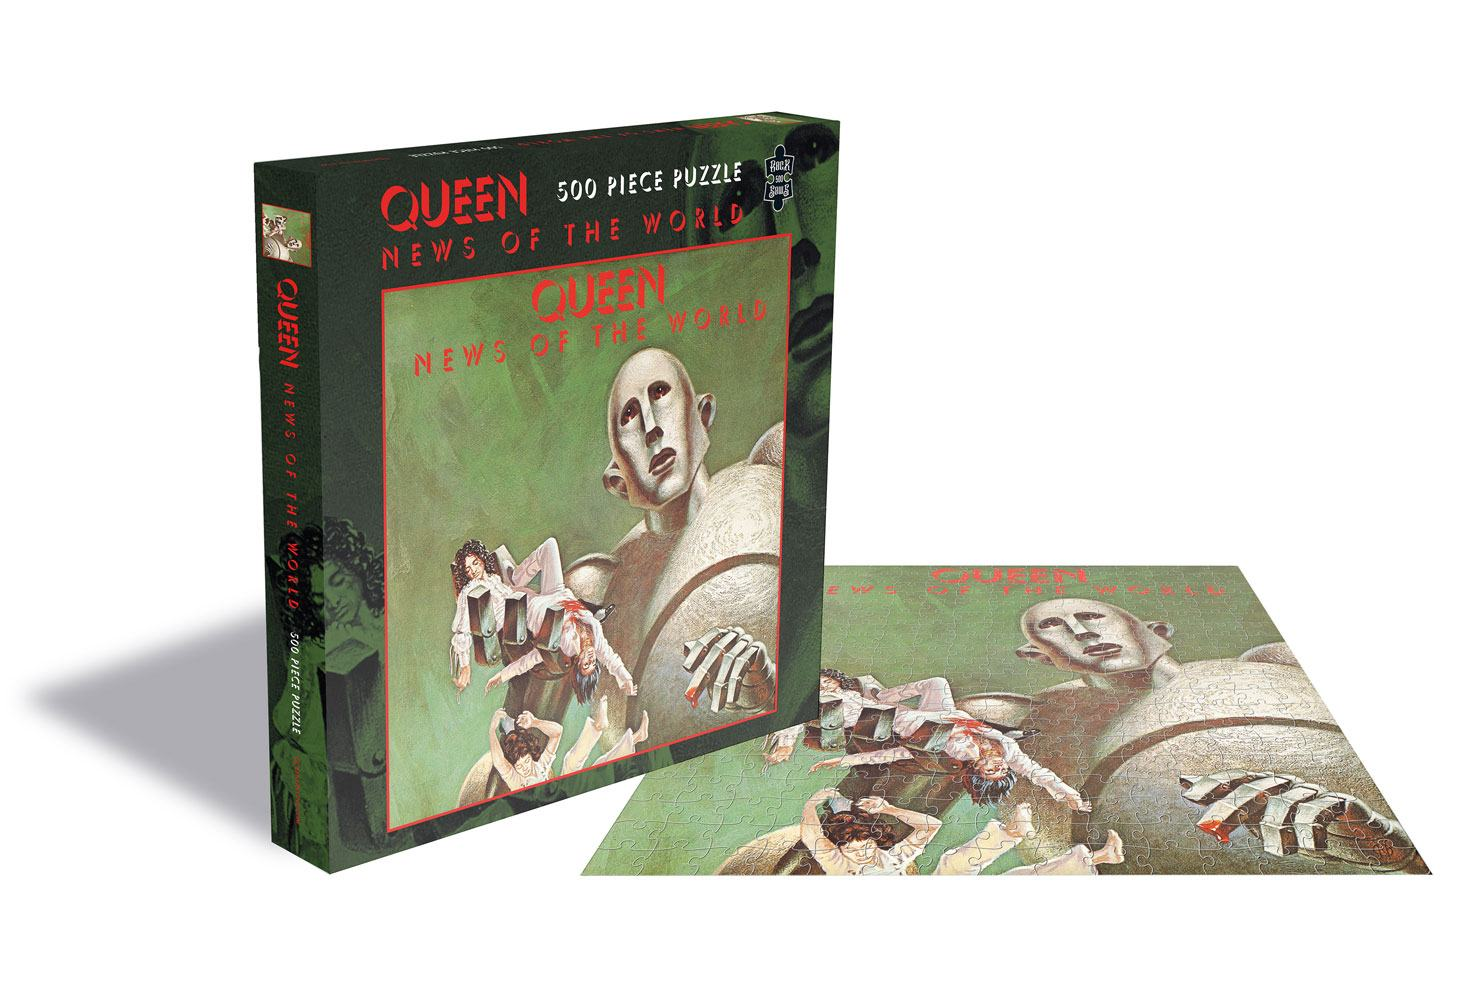 Queen Puzzle News of the World